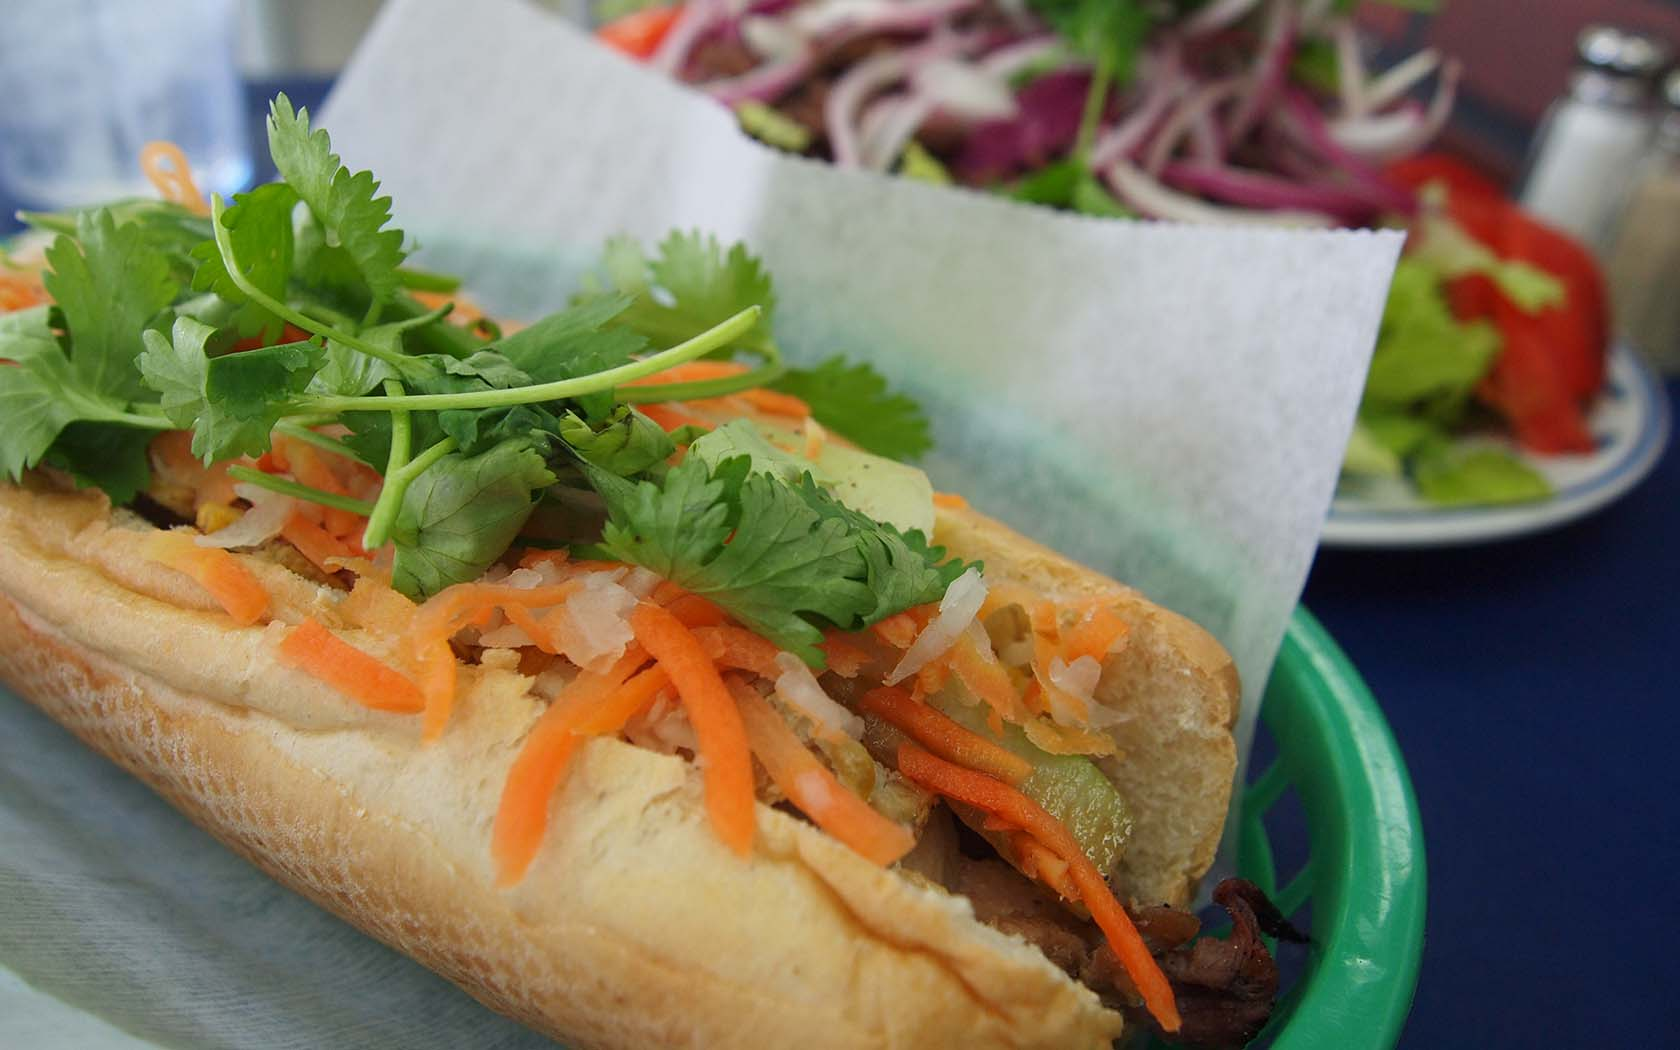 The Beginner's Guide To Banh Mi, Vietnam's Favourite Food